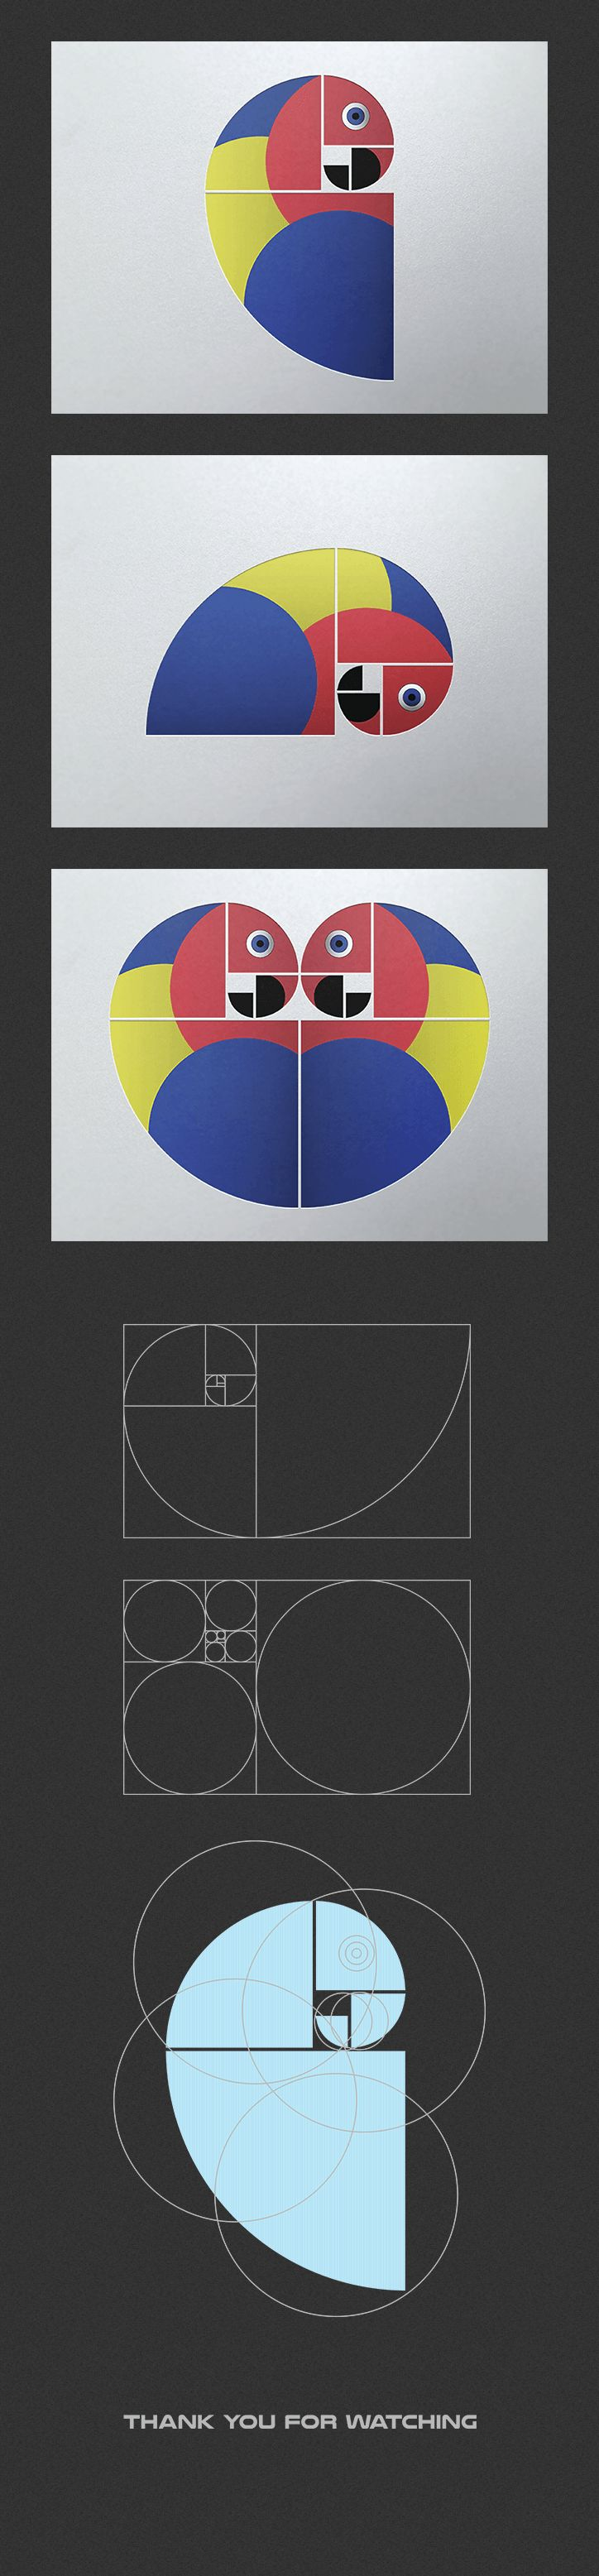 https://www.behance.net/gallery/24206783/Parrot-Golden-Ratio